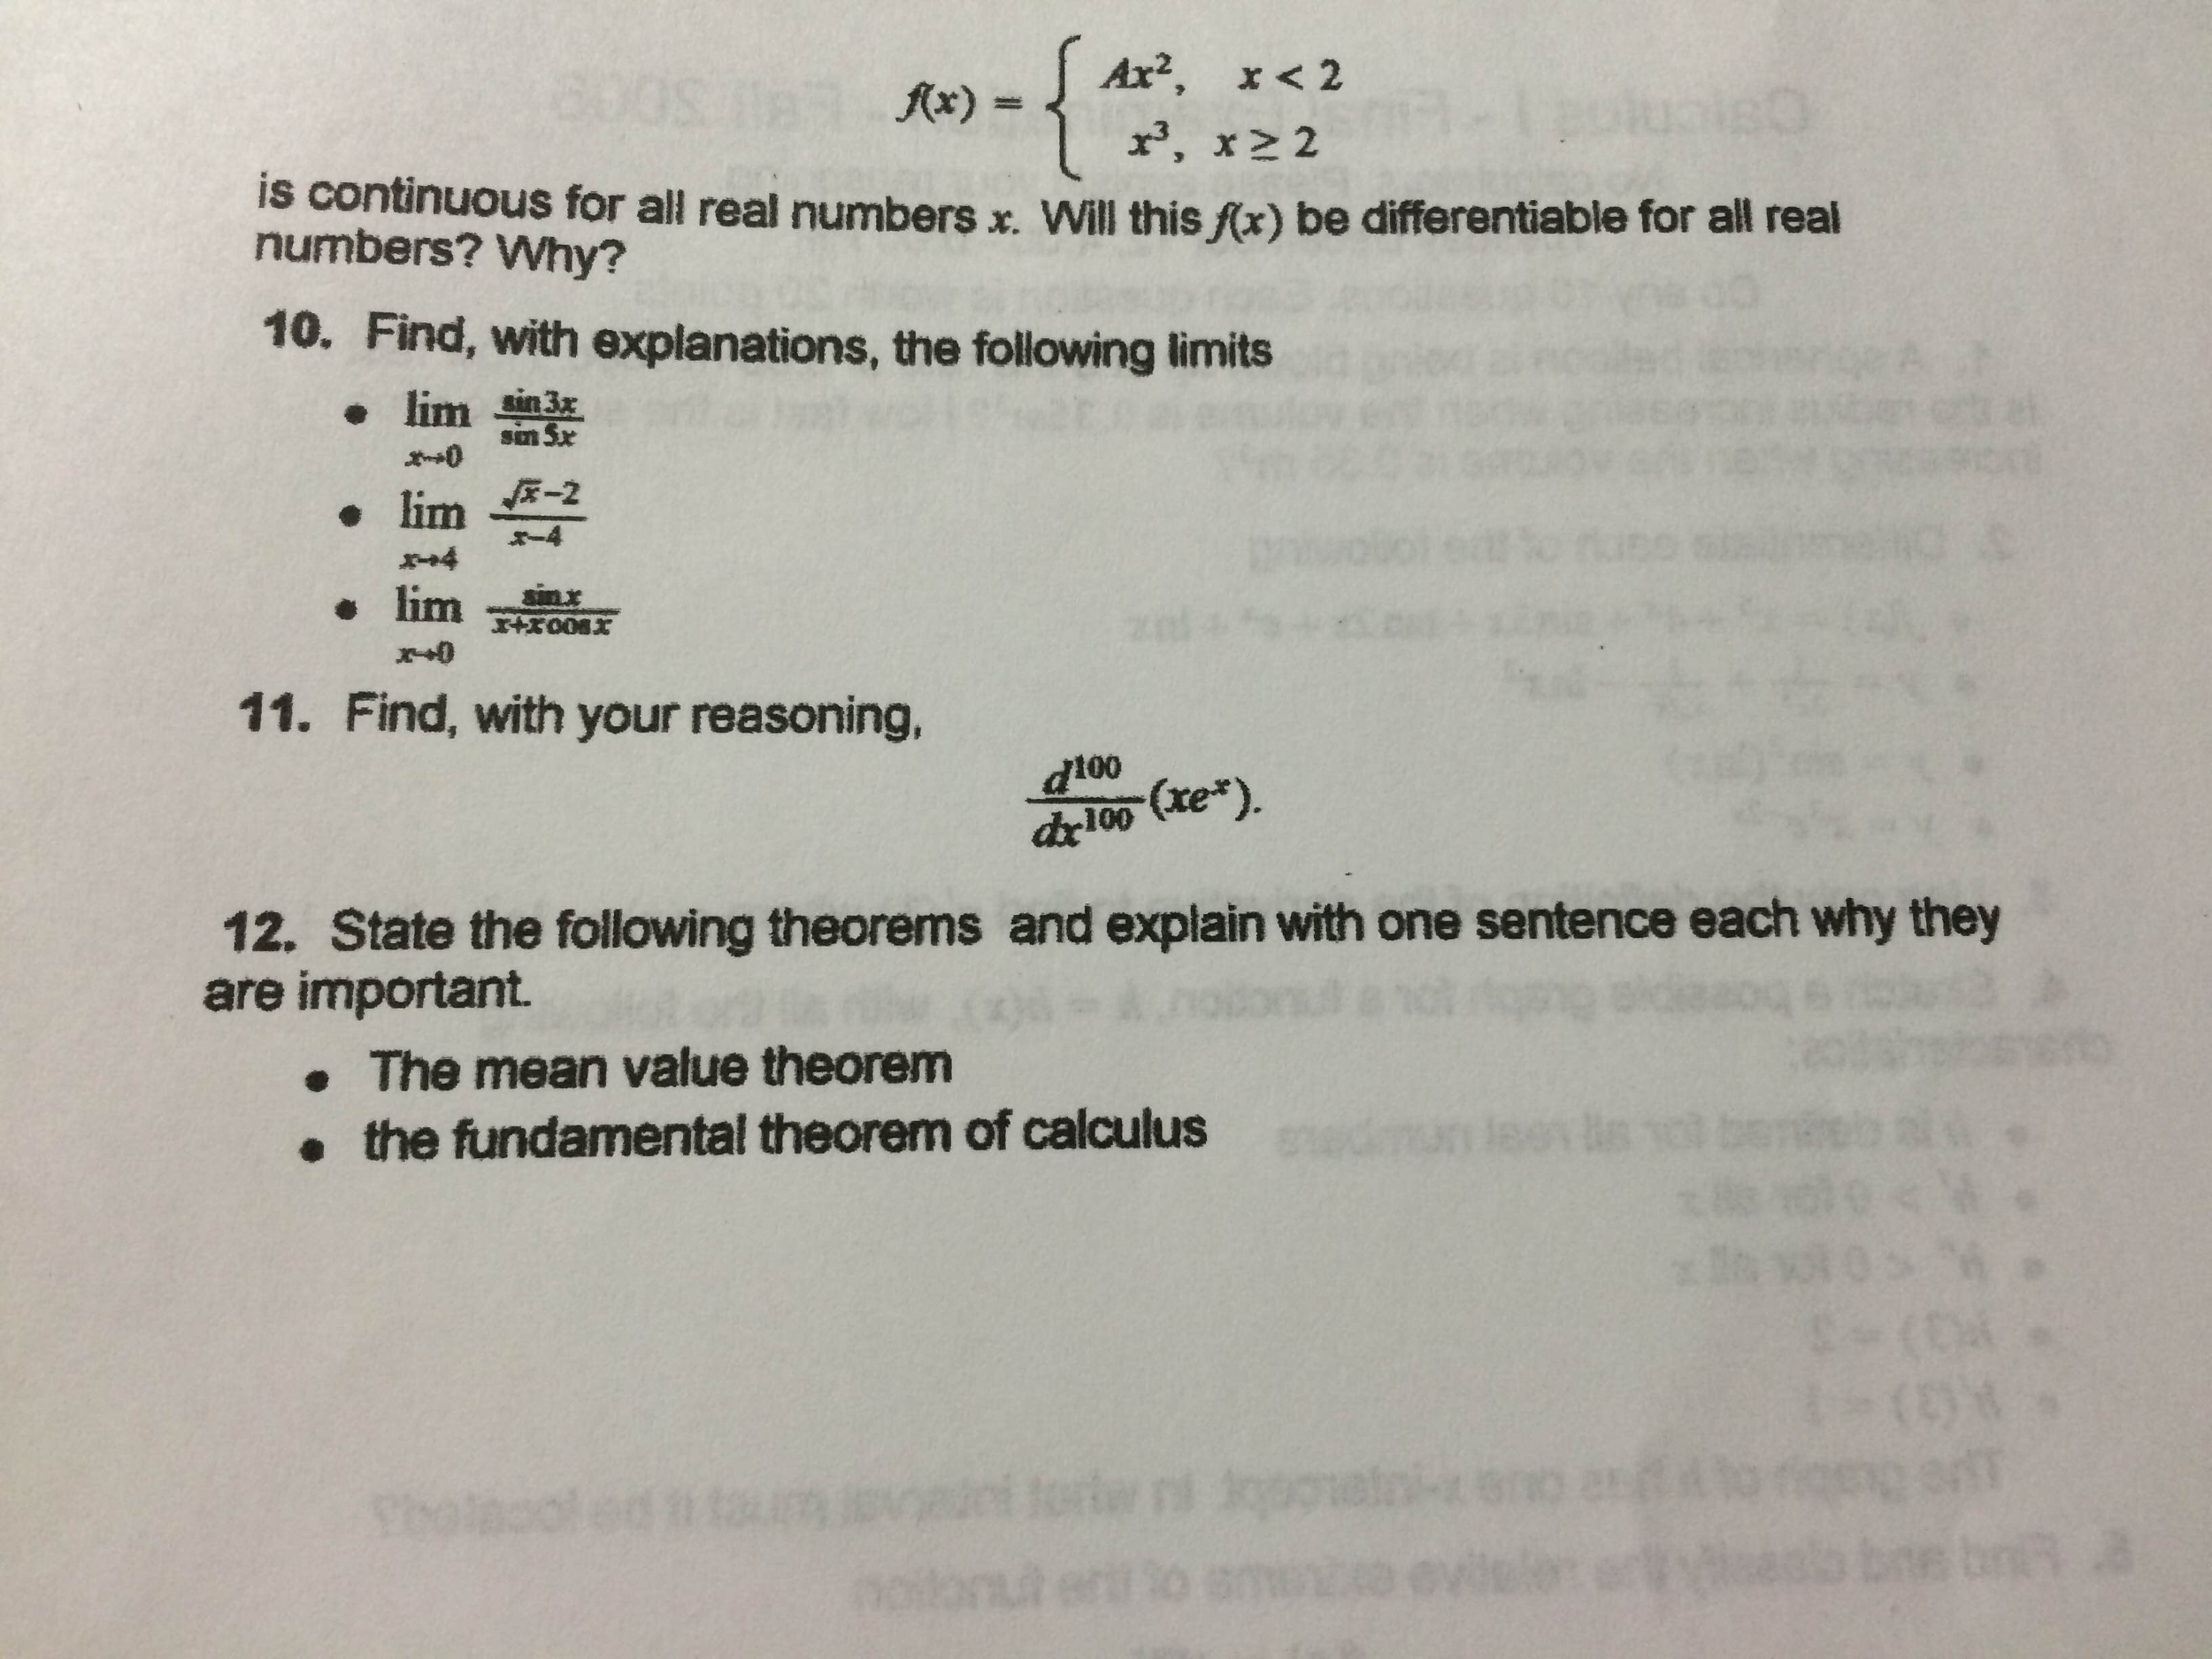 how to find all real values of x